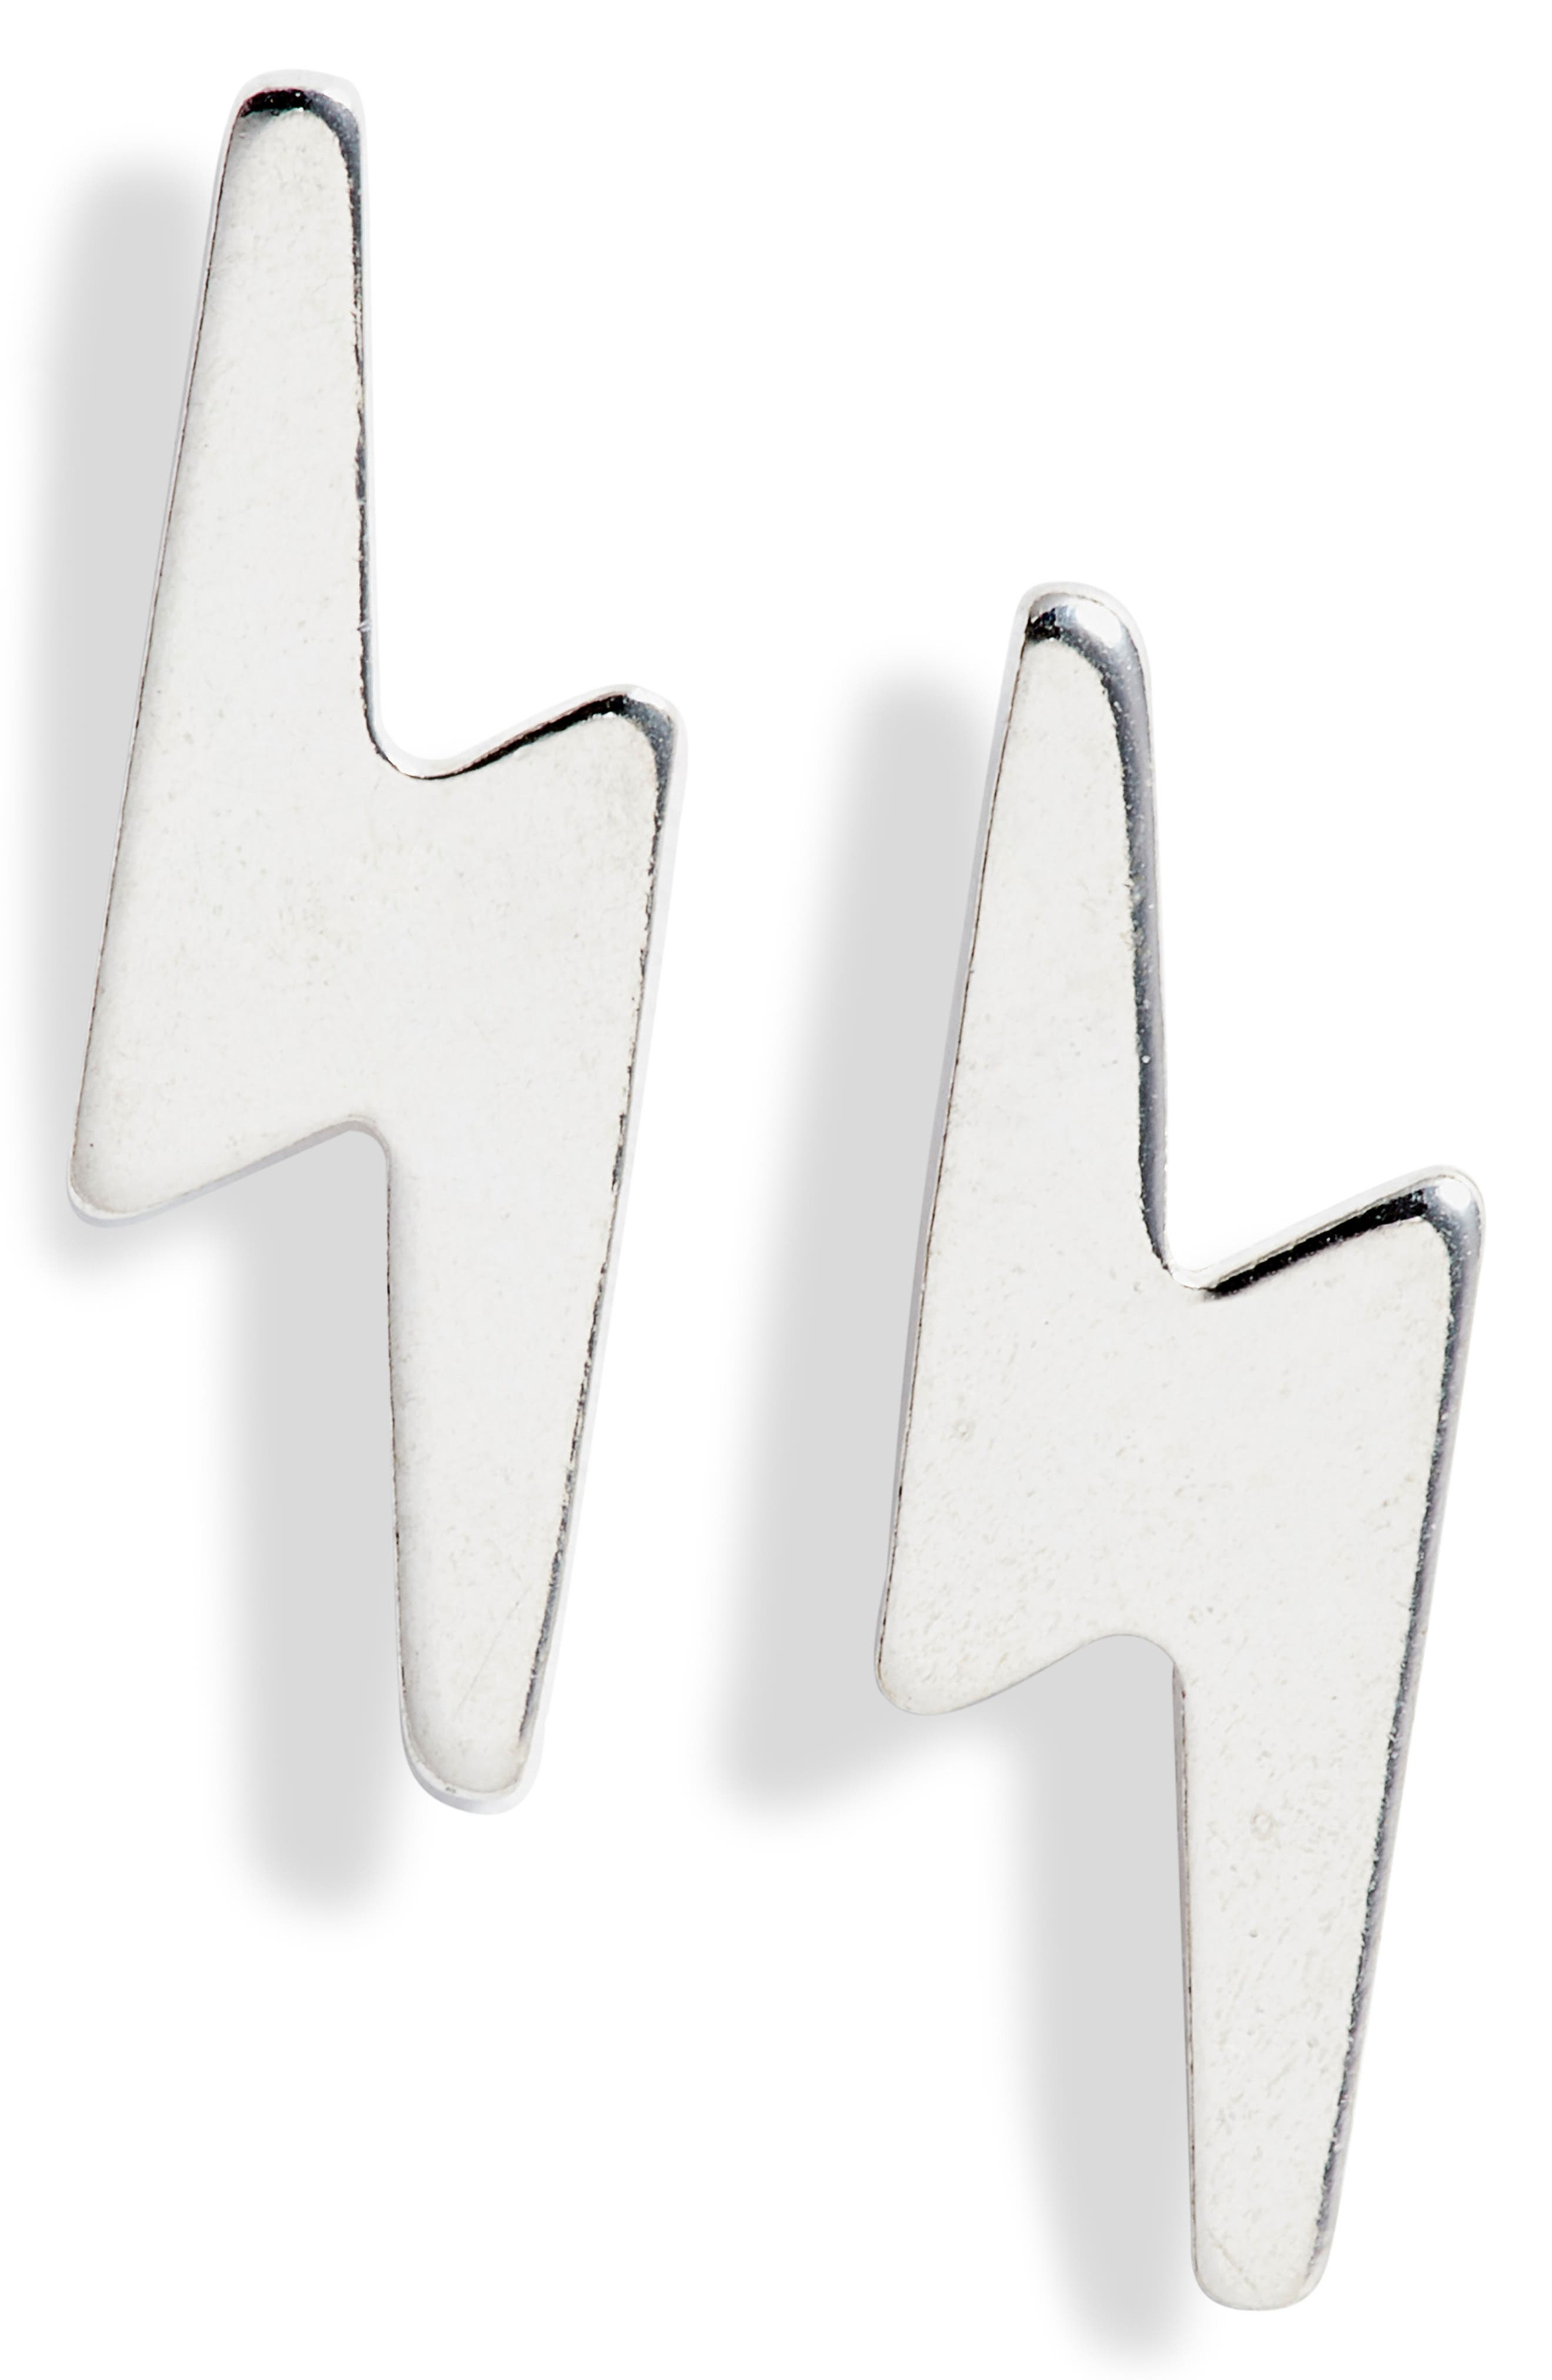 Lightning bolts are polished to a brilliant shine in these electrifying studs that are made in San Diego, CA. Style Name: Set & Stones Arlo Lightning Bolt Stud Earrings. Style Number: 6093922. Available in stores.